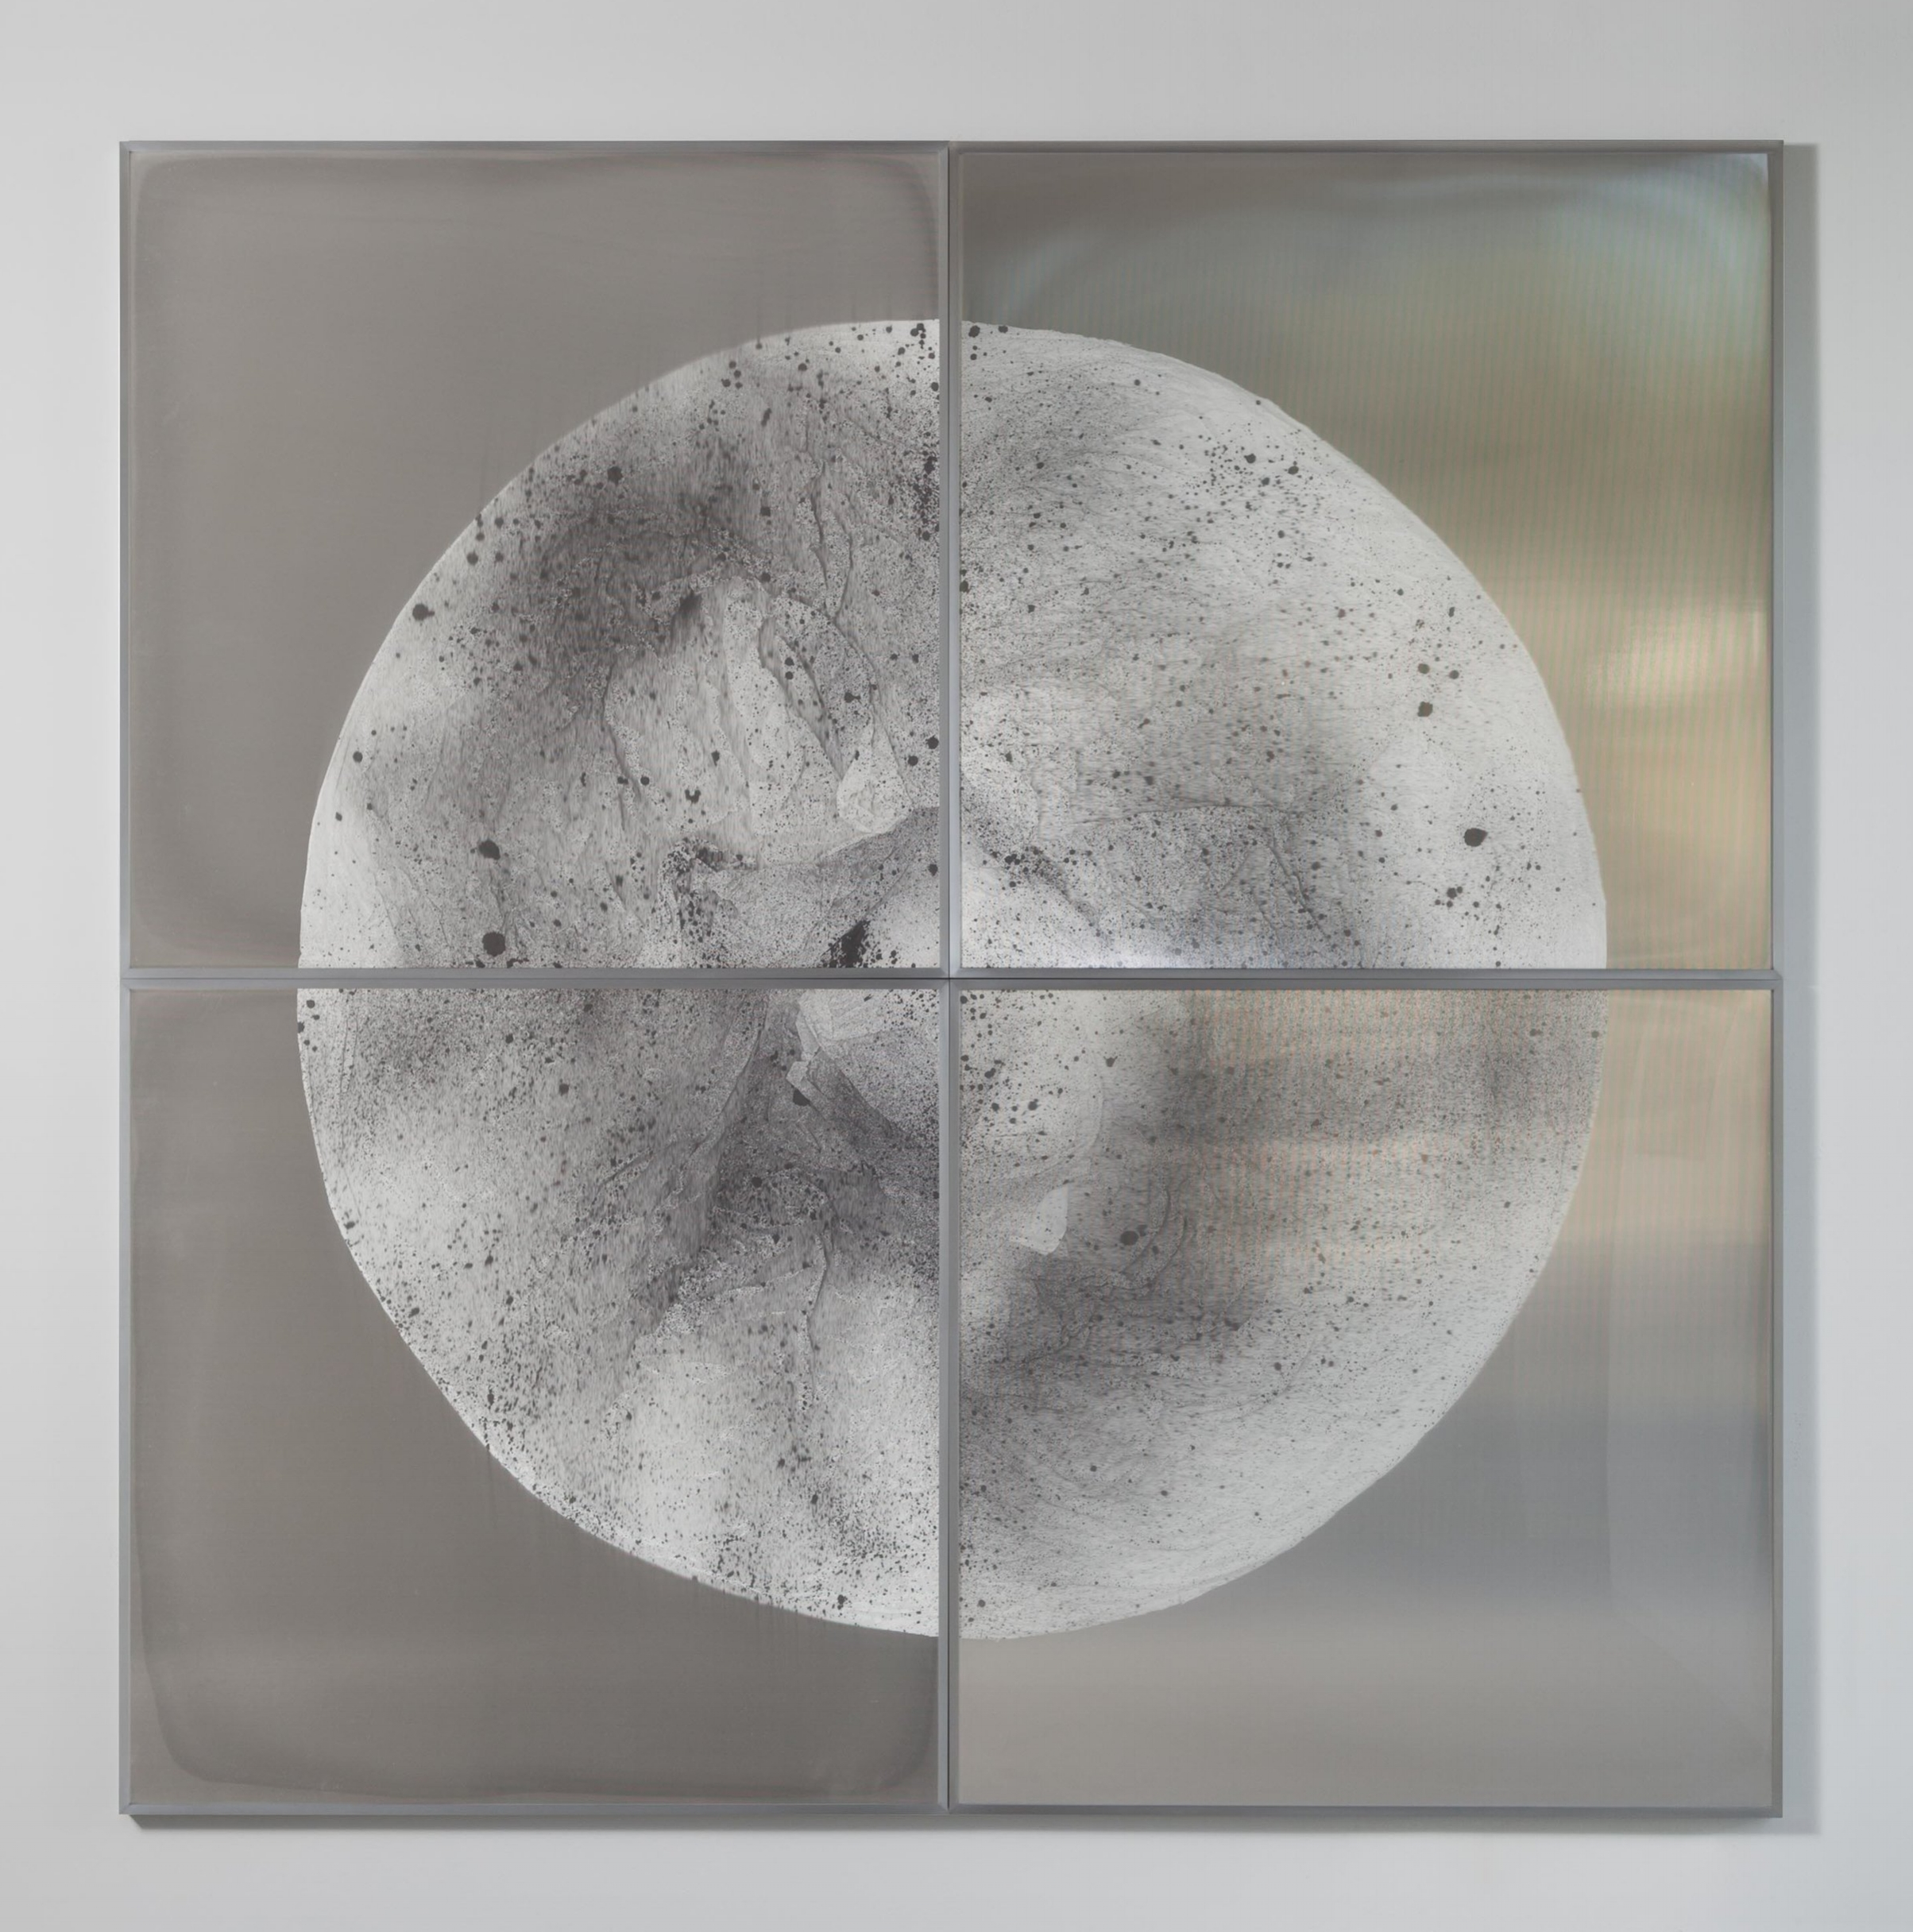 Verklärte Nacht (Transfigured Night) / Part V (Quadriptych),  2018 Ink on Xuan paper on mirror beneath linear Plexiglas, aluminium frame 240 x 240 cm (95 x 95 in)